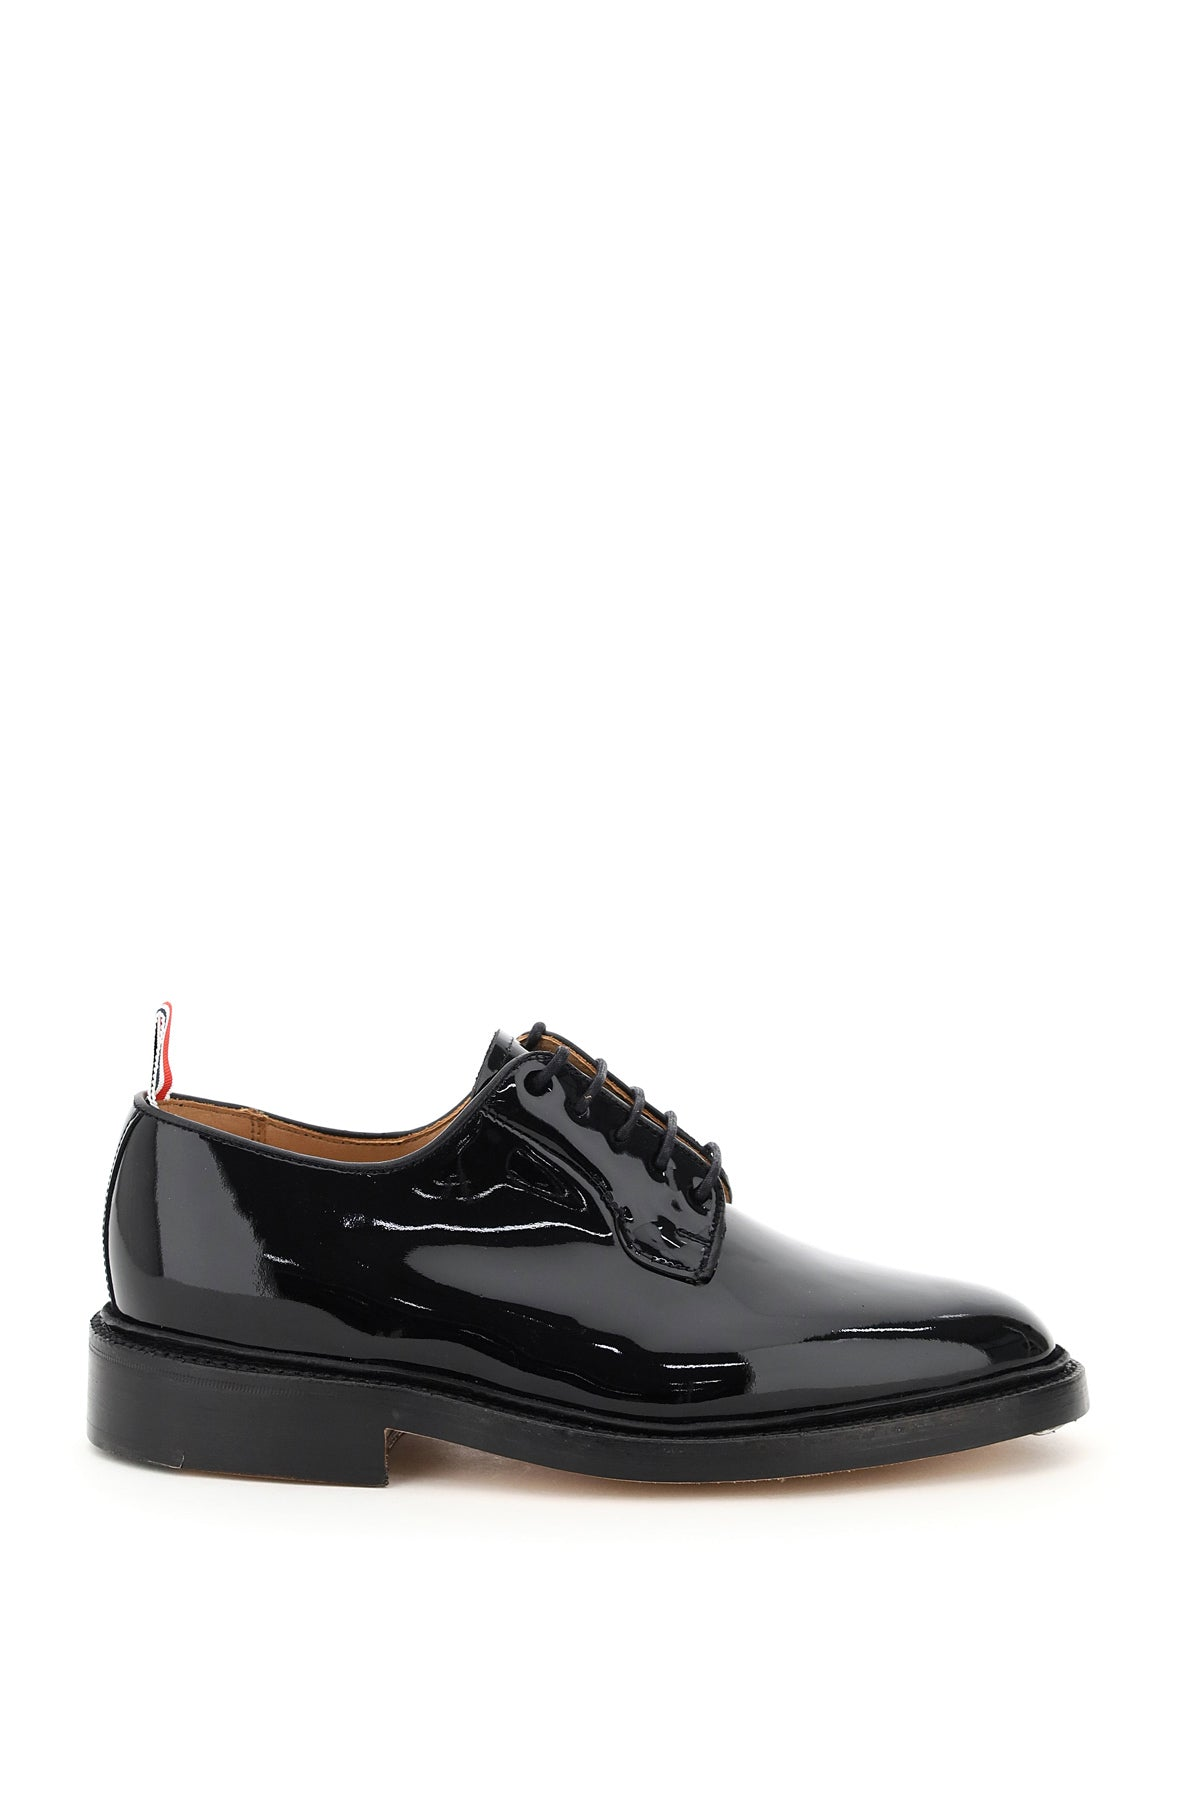 Thom Browne Shoes THOM BROWNE LACE UP DERBY SHOES